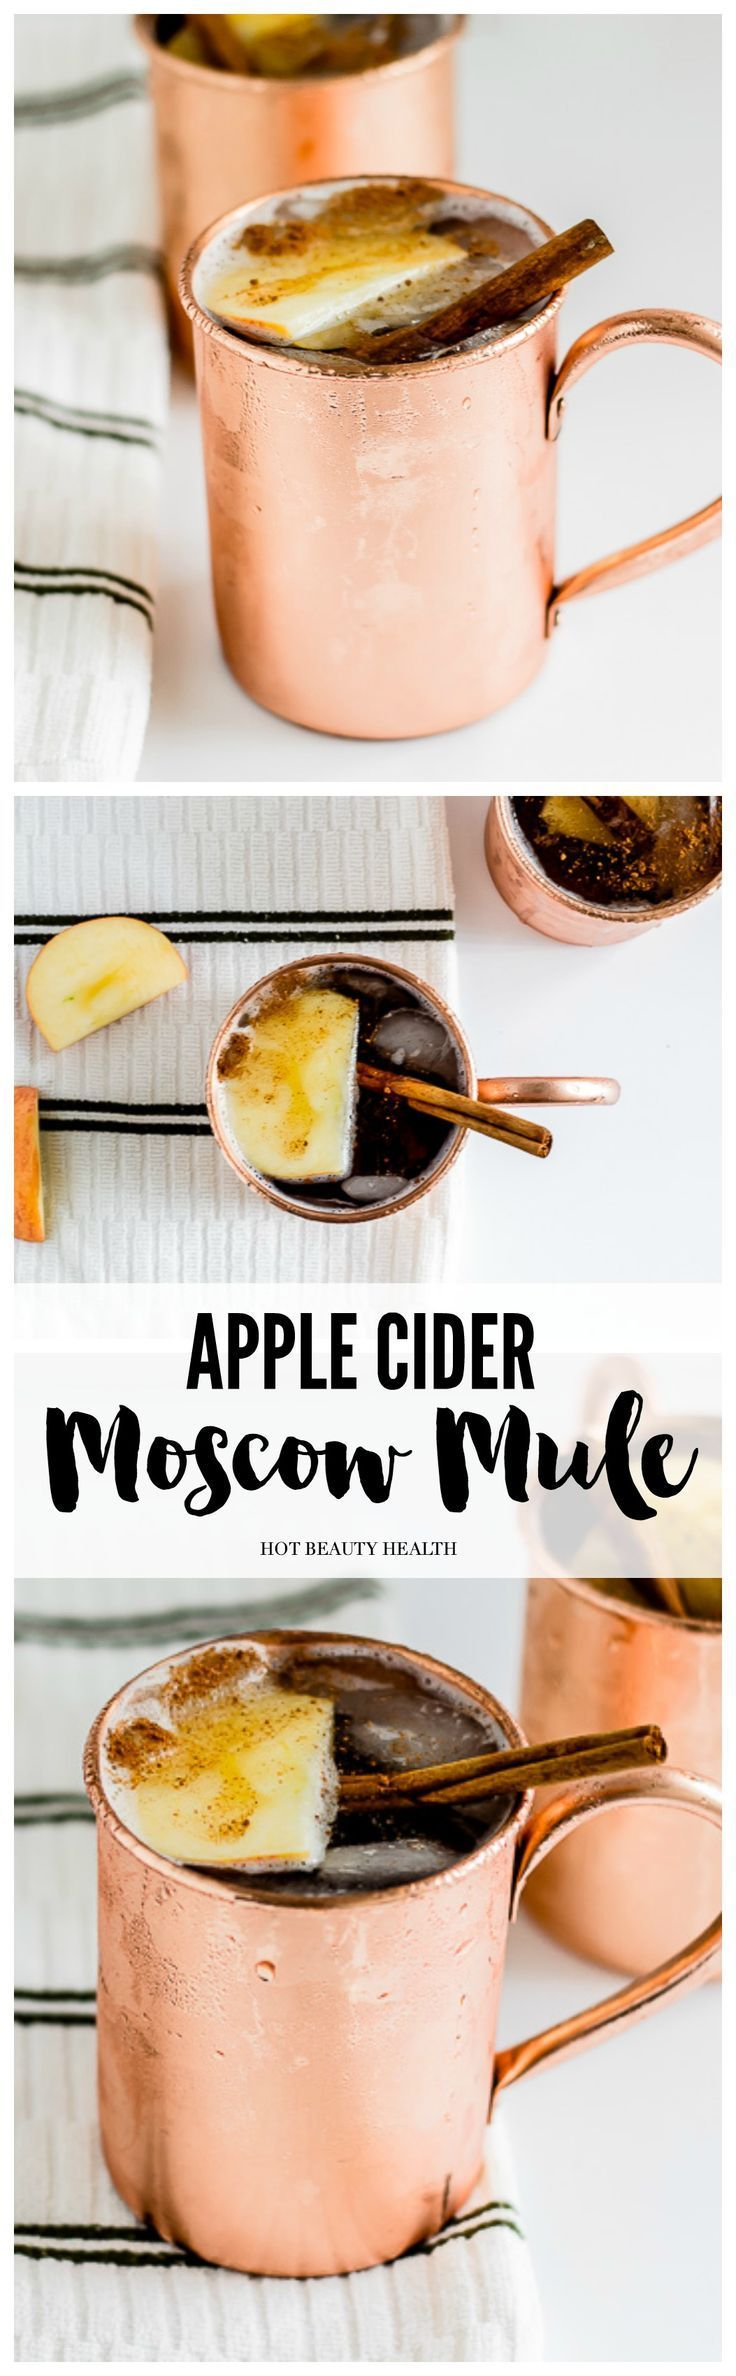 The addition of apple cider pairs perfectly with the ginger beer while the cinnamon adds a lovely fall aroma and flavor to the drink. Also, the perfect holiday drink to sip during Thanksgiving, Christmas, and New Year's Eve. (Click here for the moscow mul